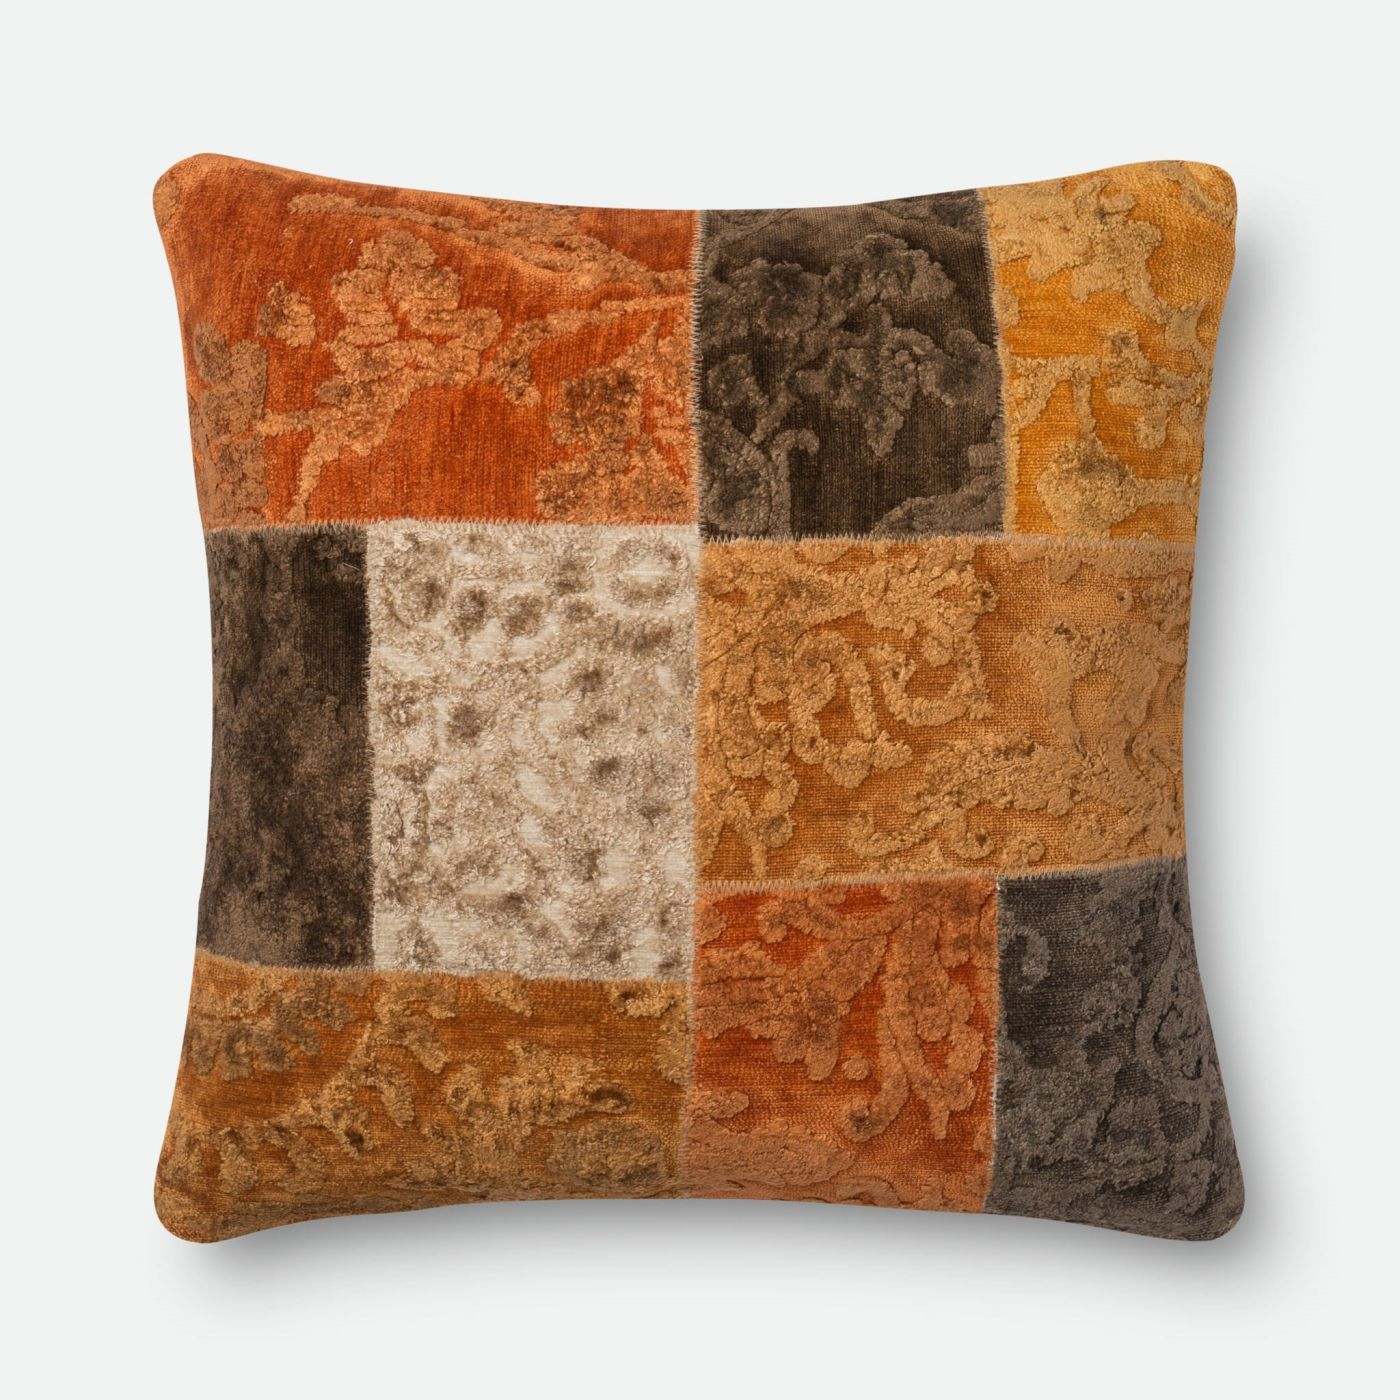 Throw Pillow Warehouse : Loloi Rugs Loloi Dellinger Decorative Throw Pillow (OPI01) DSETOPI01DI00PIL3. Only $159.00 at ...